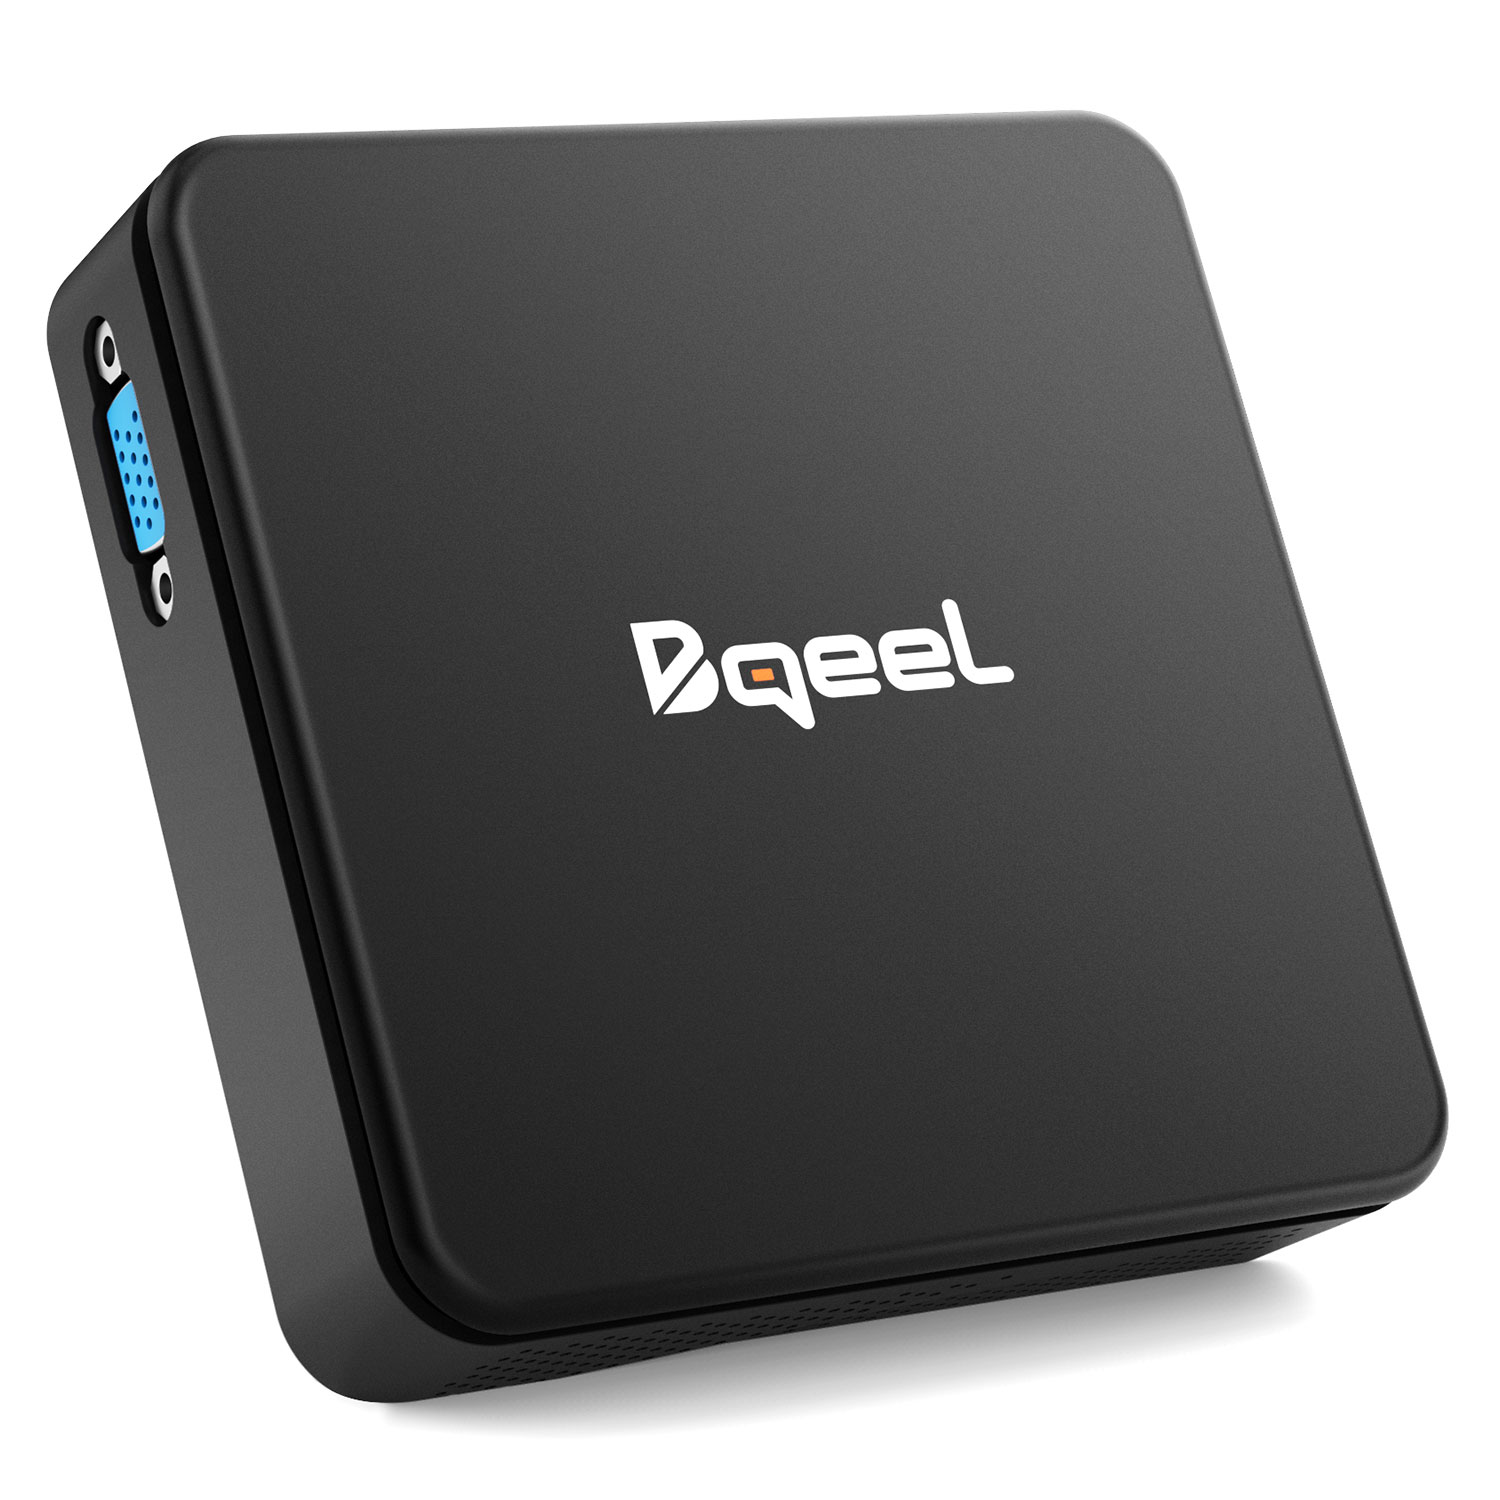 Bqeel Mini PC Win10 TX85 Desktop PC/4GB RAM/ 64 GB EMMC/Desktop-Computer Intel Cherry Trail Z8350/LAN RTL8111x 1000Mbps/ WiFi 2.4G/5G/ Bluetooth 4.0